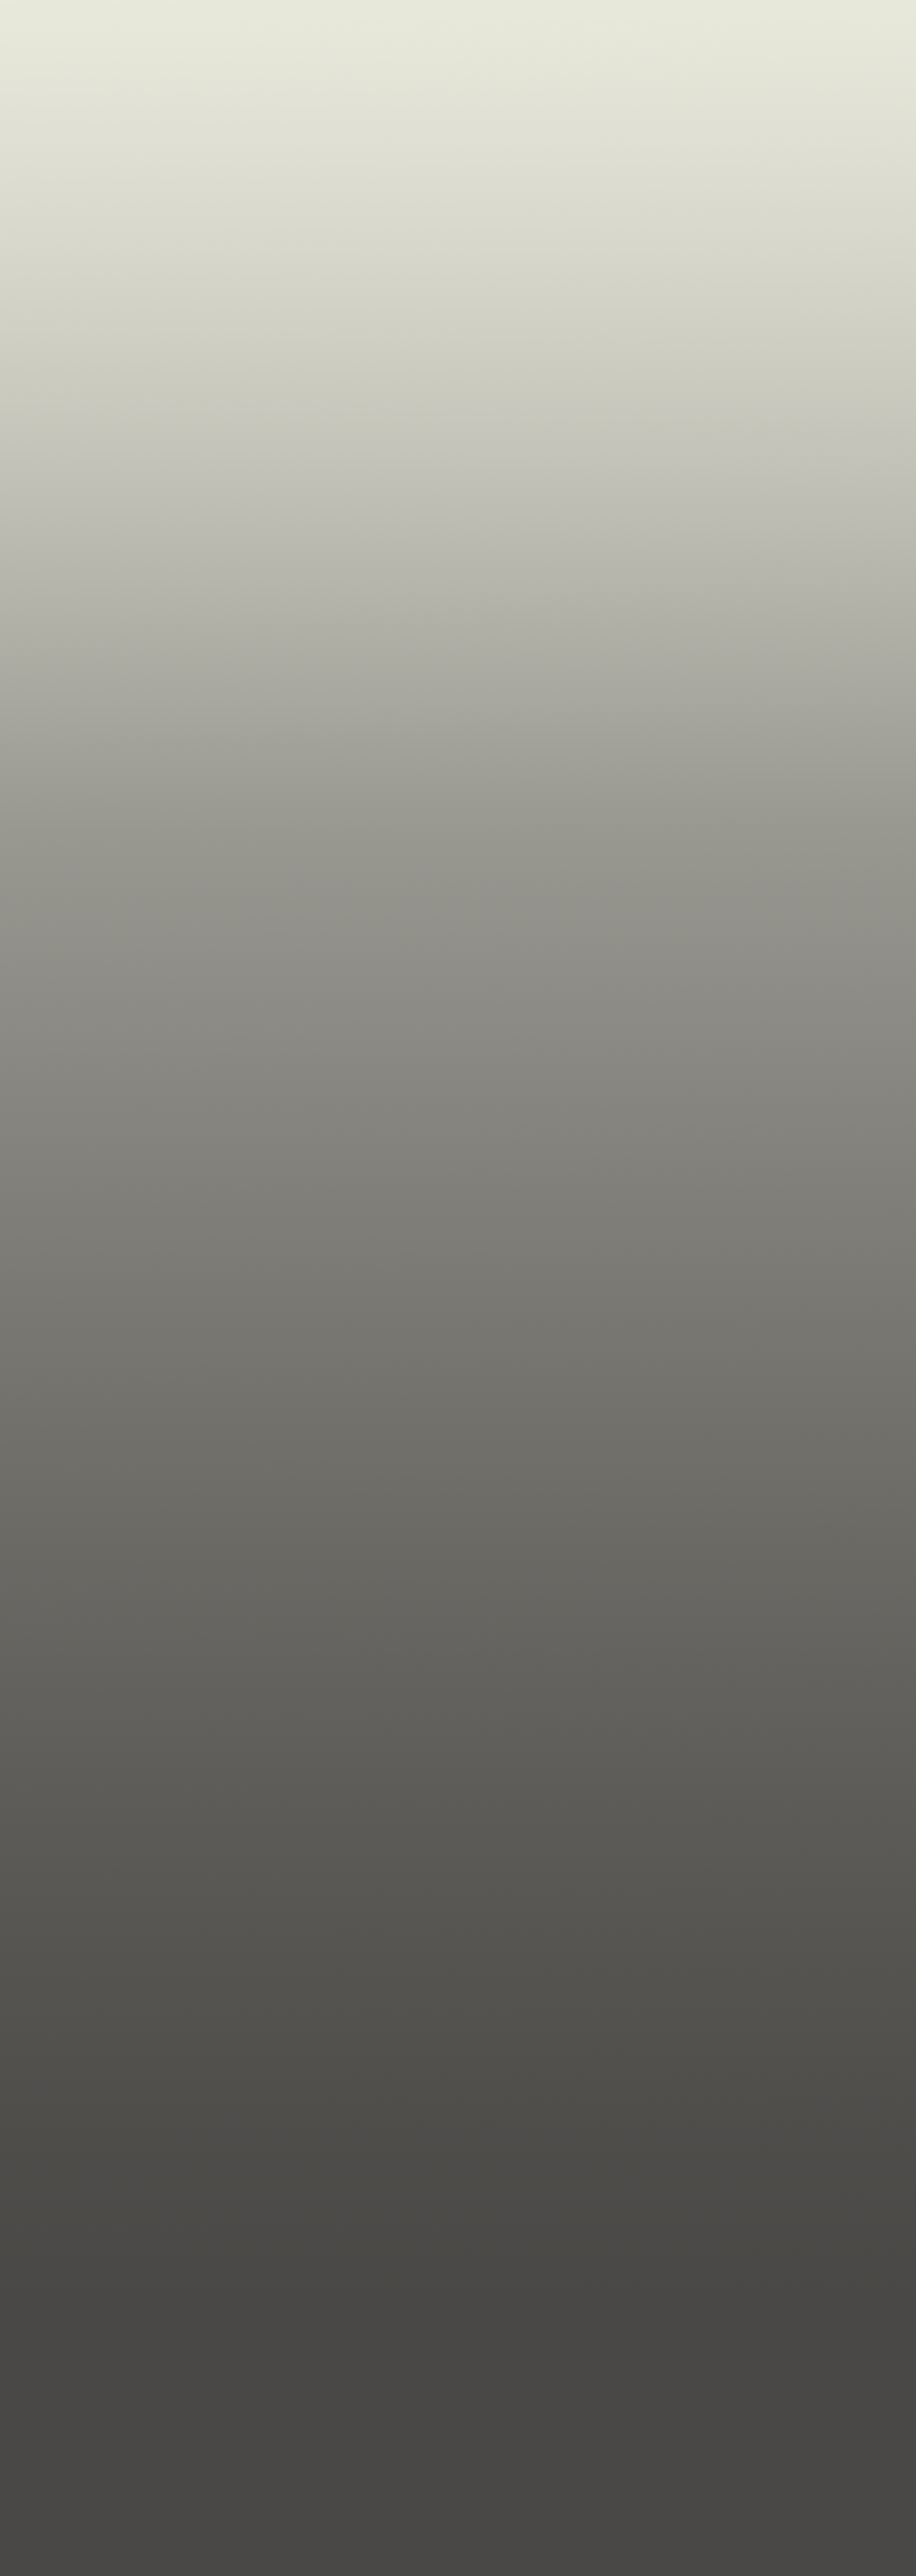 Layer_5400x1080.png